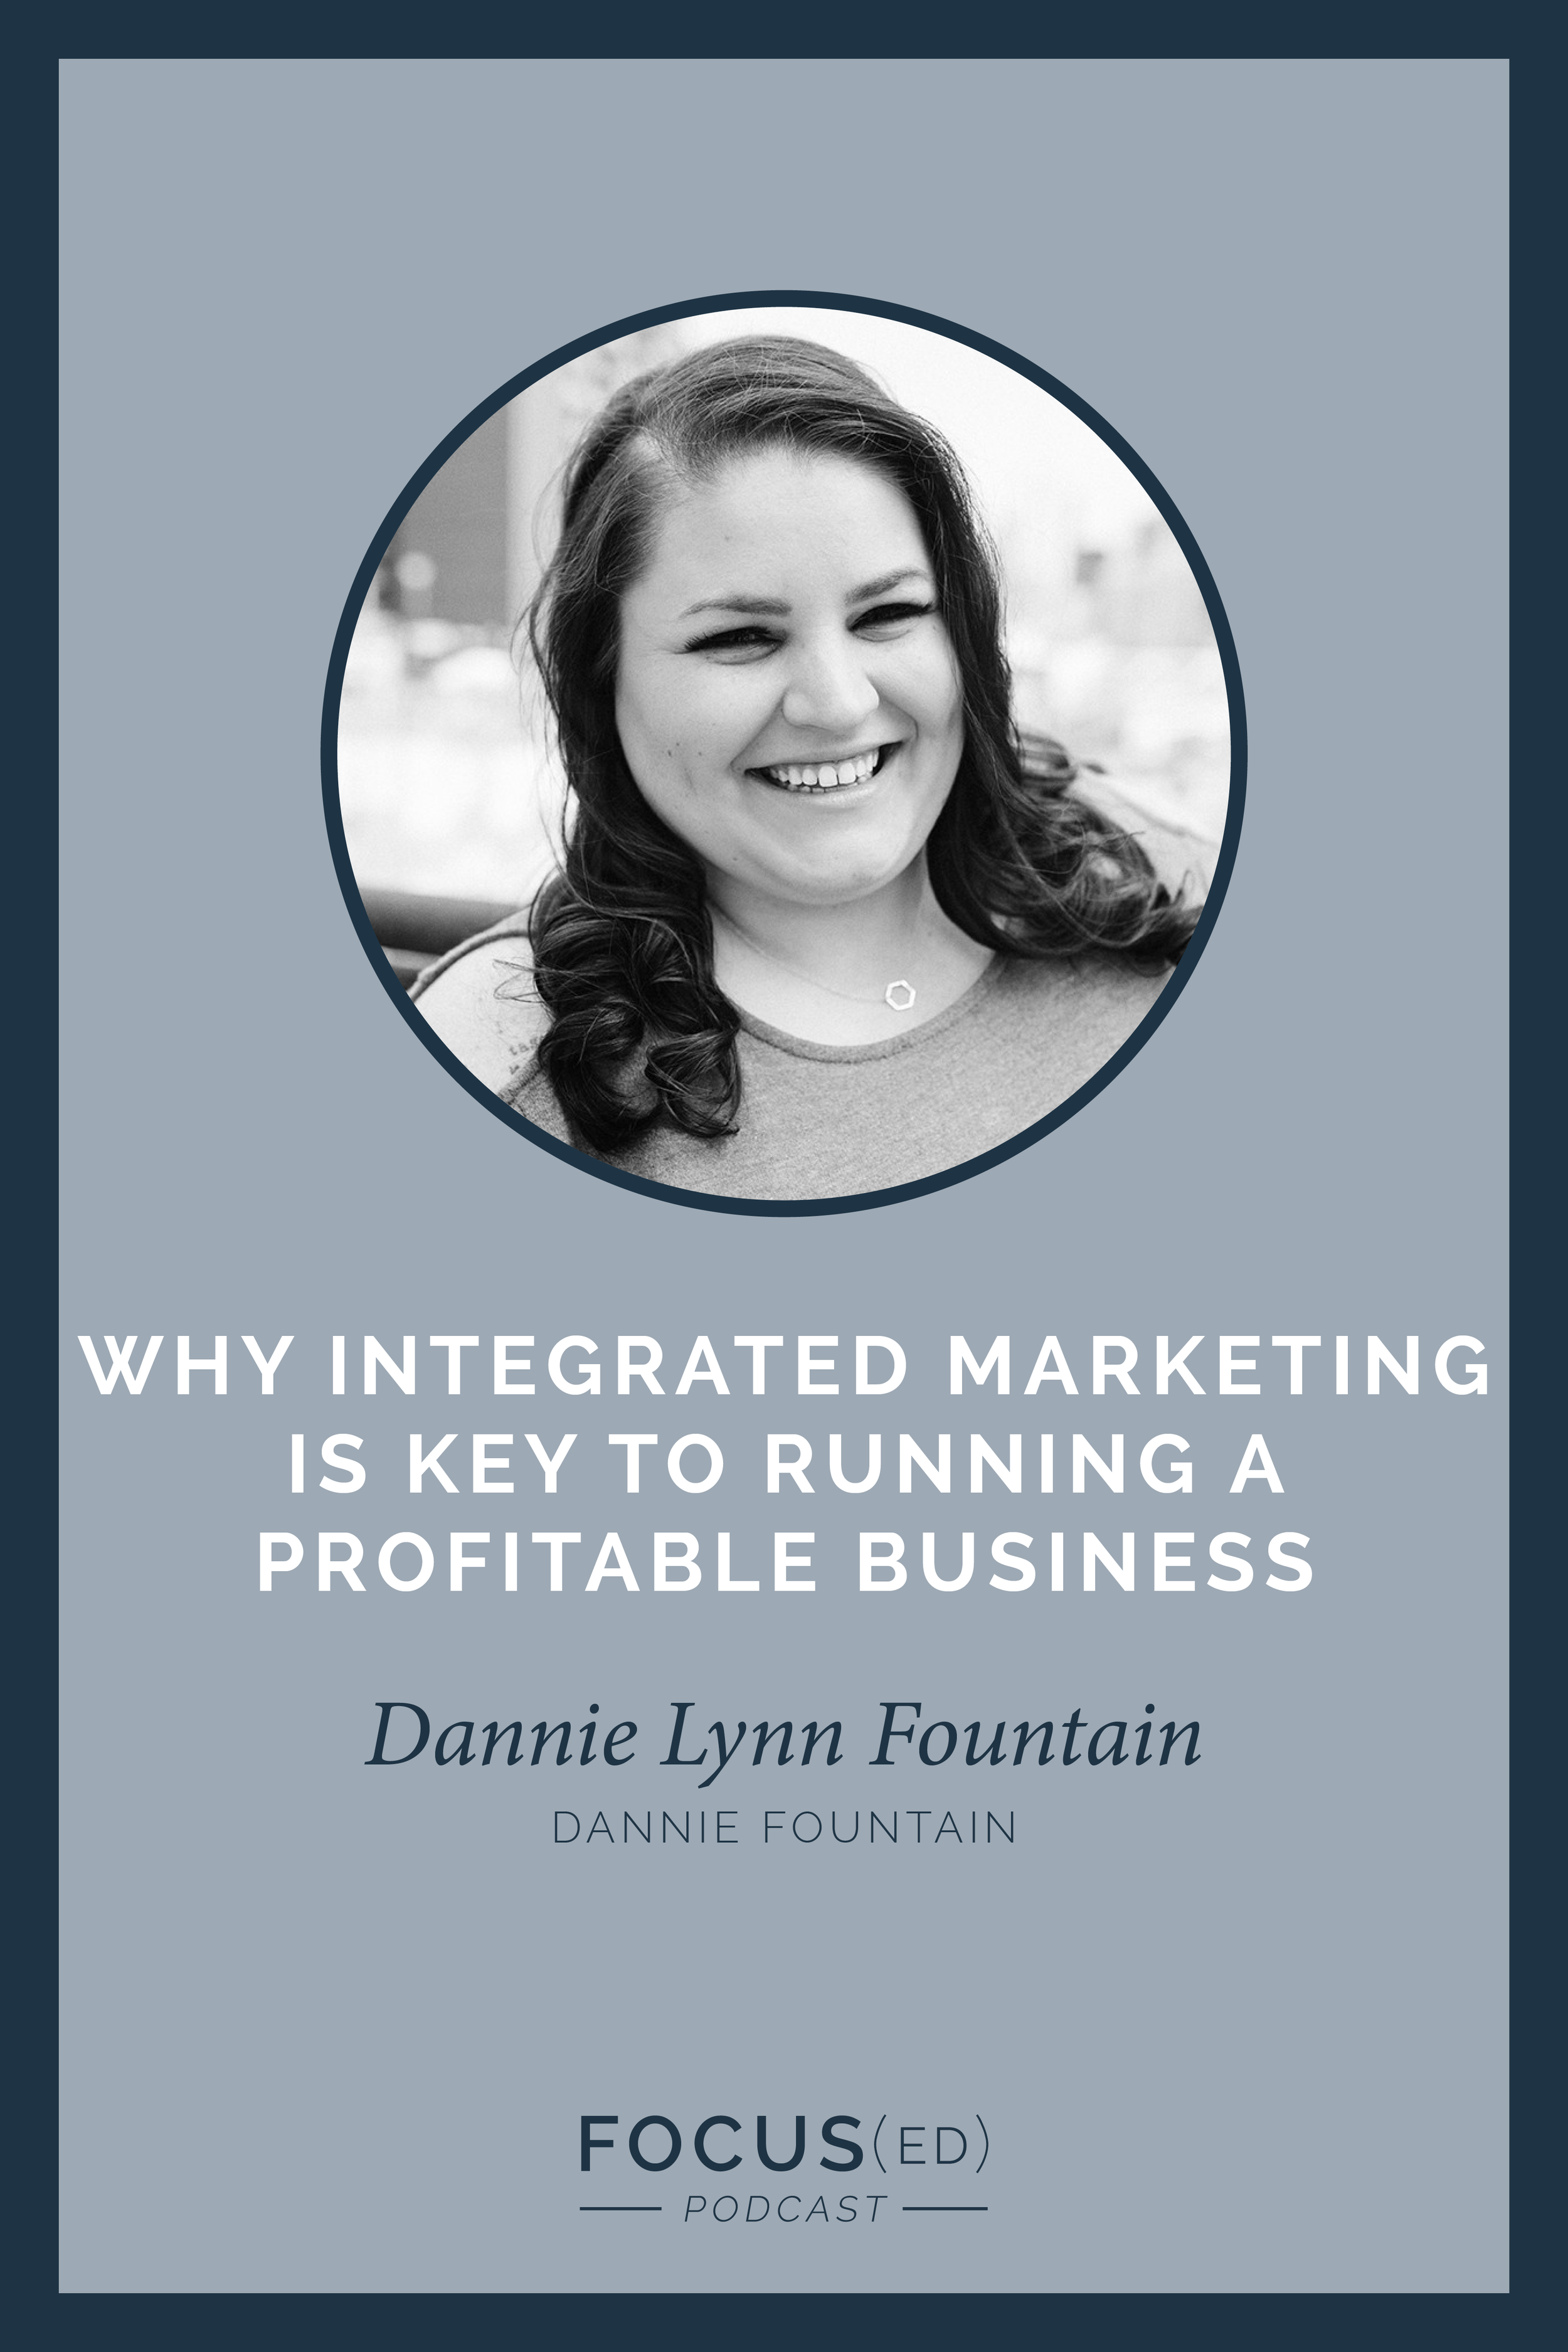 Integrated Marketing, what is it and why it is key to running a profitable business